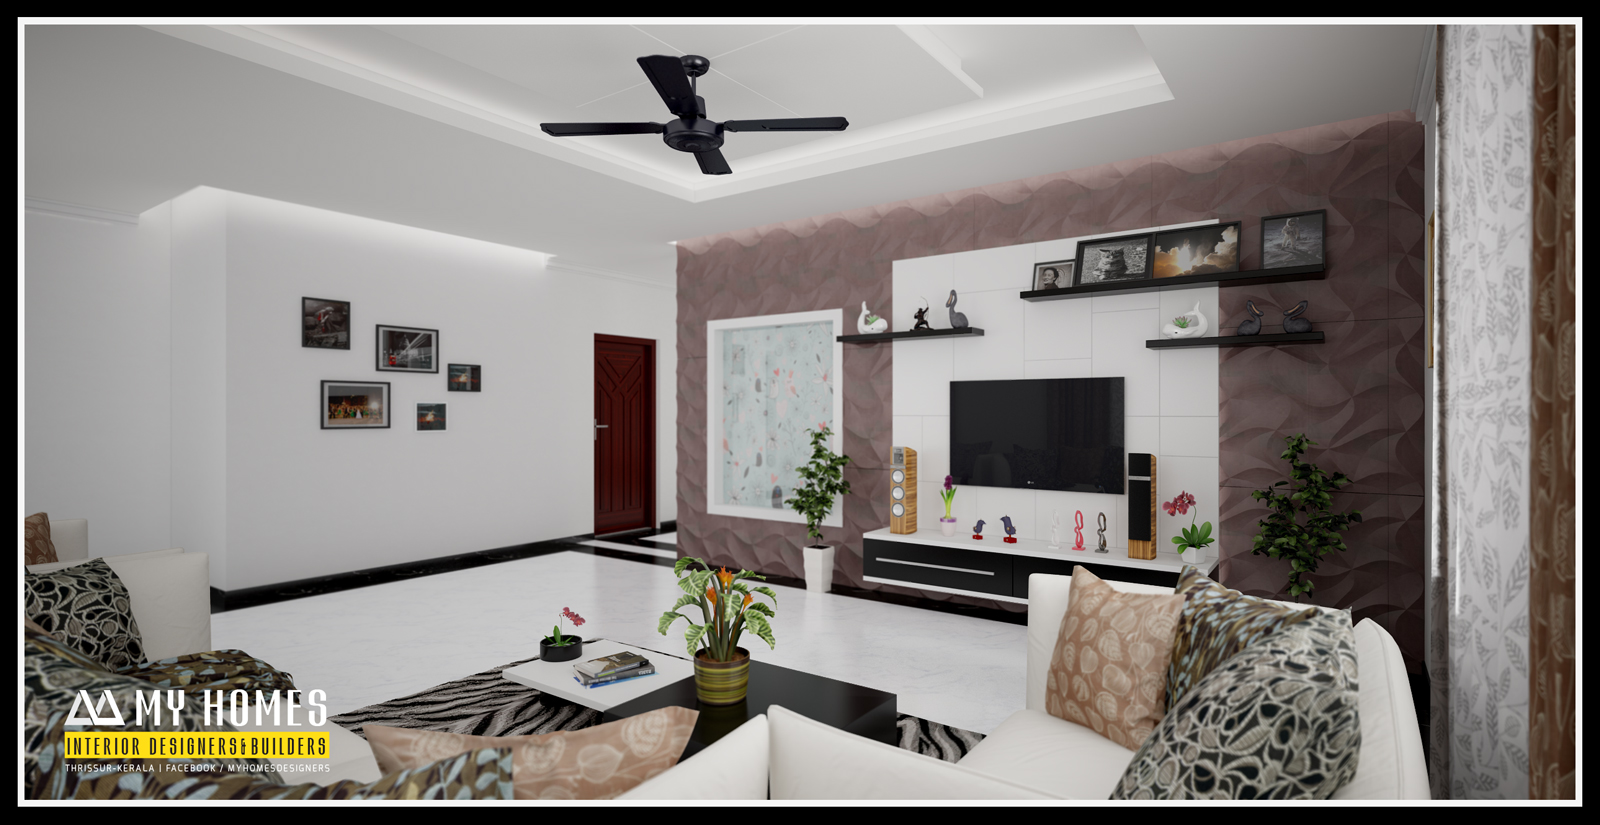 Kerala interior design ideas from designing company thrissur In room designs